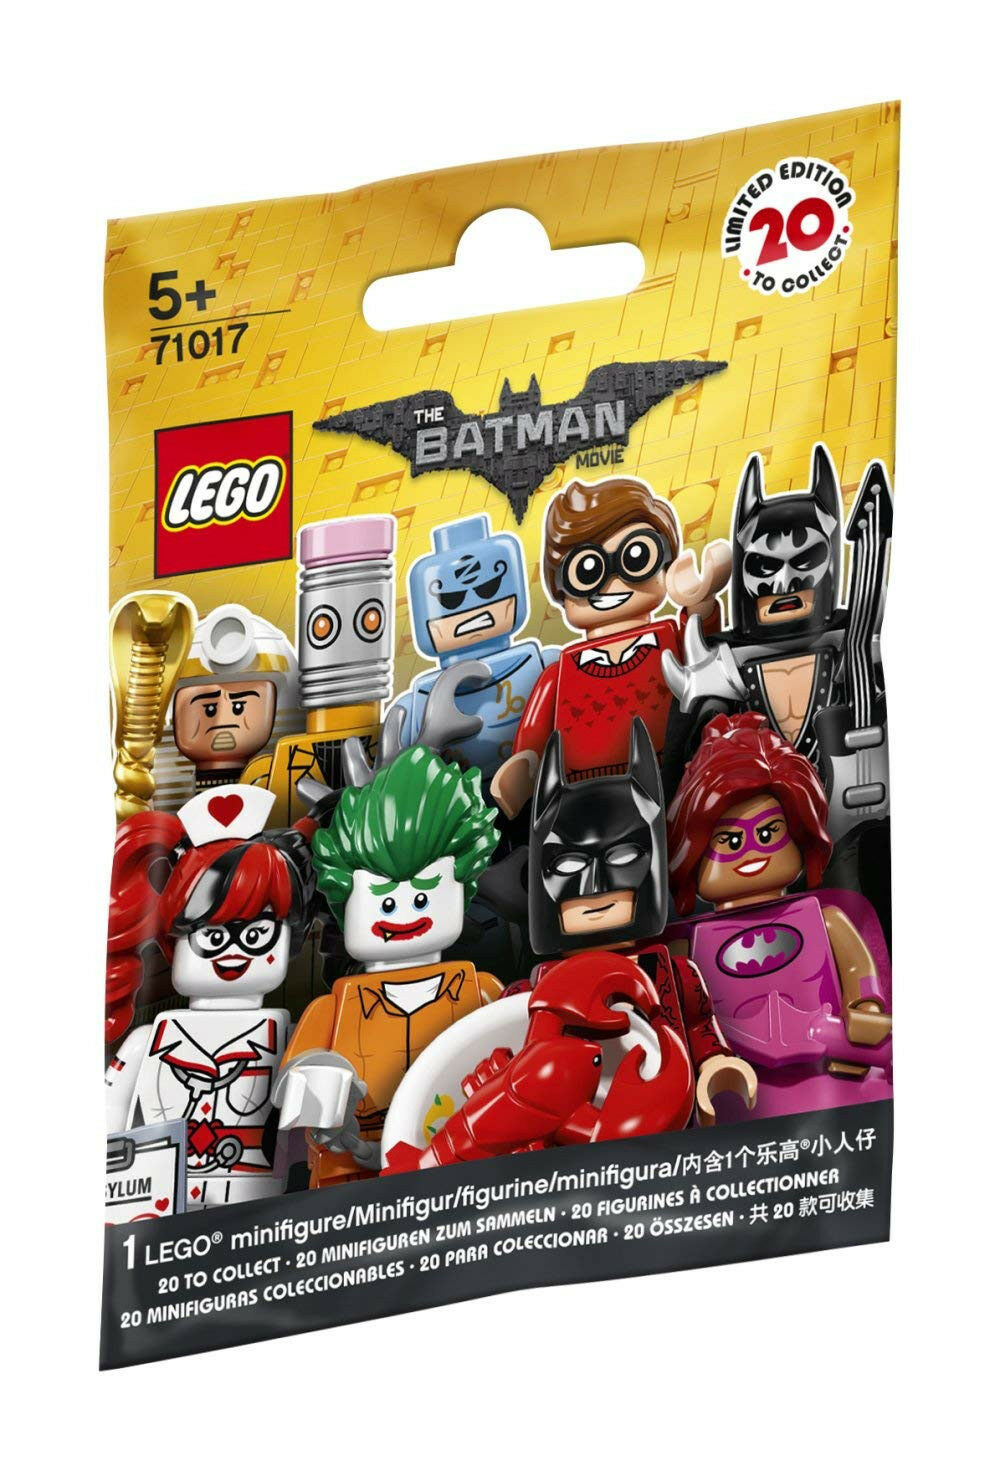 10 sealed Blind Bags LEGO Minifigures – The Movie Batman Series 71017